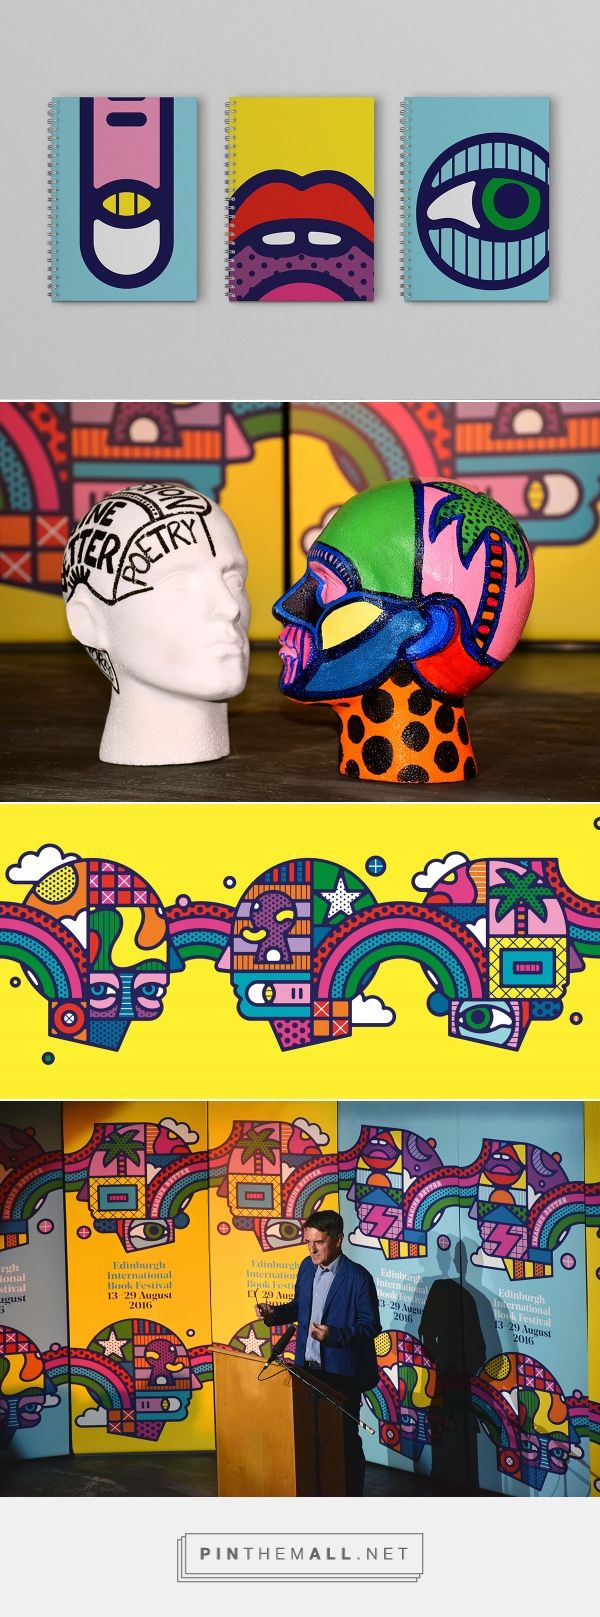 Craig & Karl and Tangent's psychedelic identity for Edinburgh International Book Festival - Creative Review  https://www.creativereview.co.uk/craig-karl-and-tangents-psychedelic-identity-for-edinburgh-international-book-festival - created via https://pinthemall.net